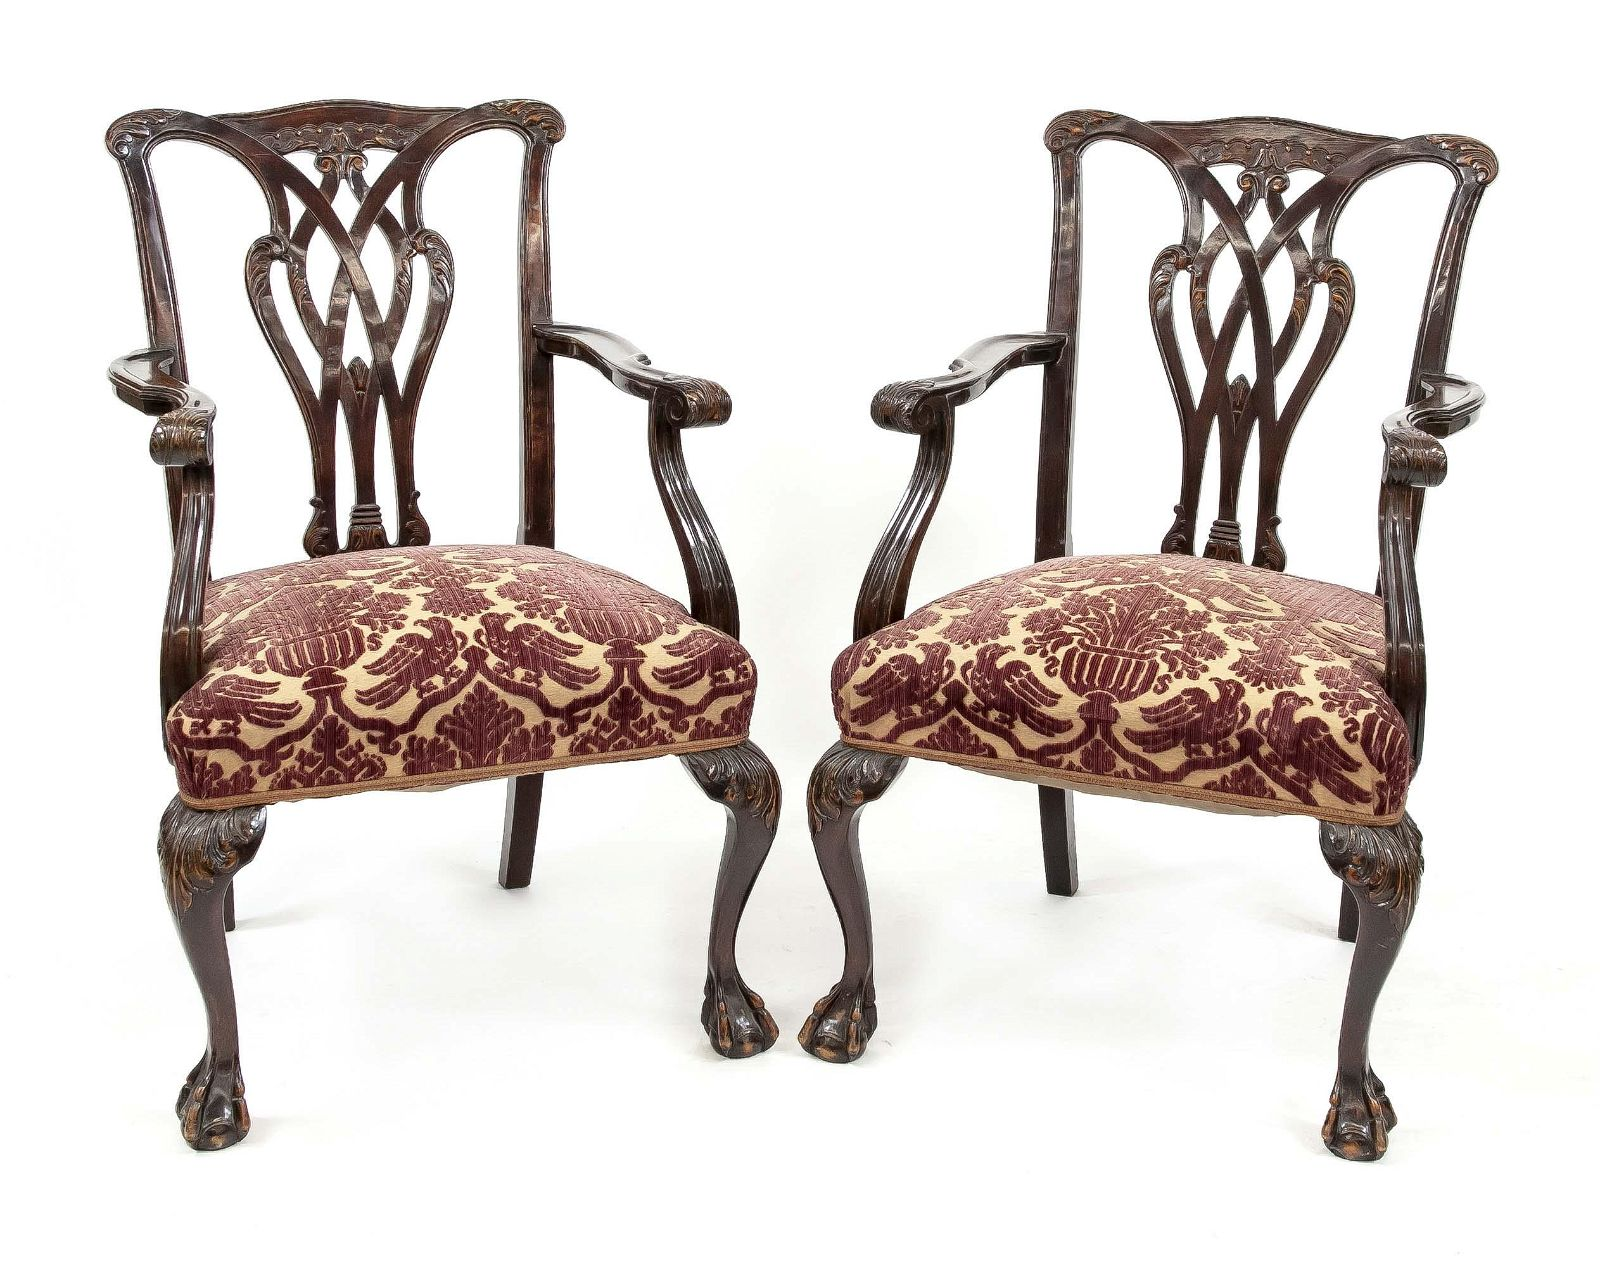 Pair of armchairs, England 2